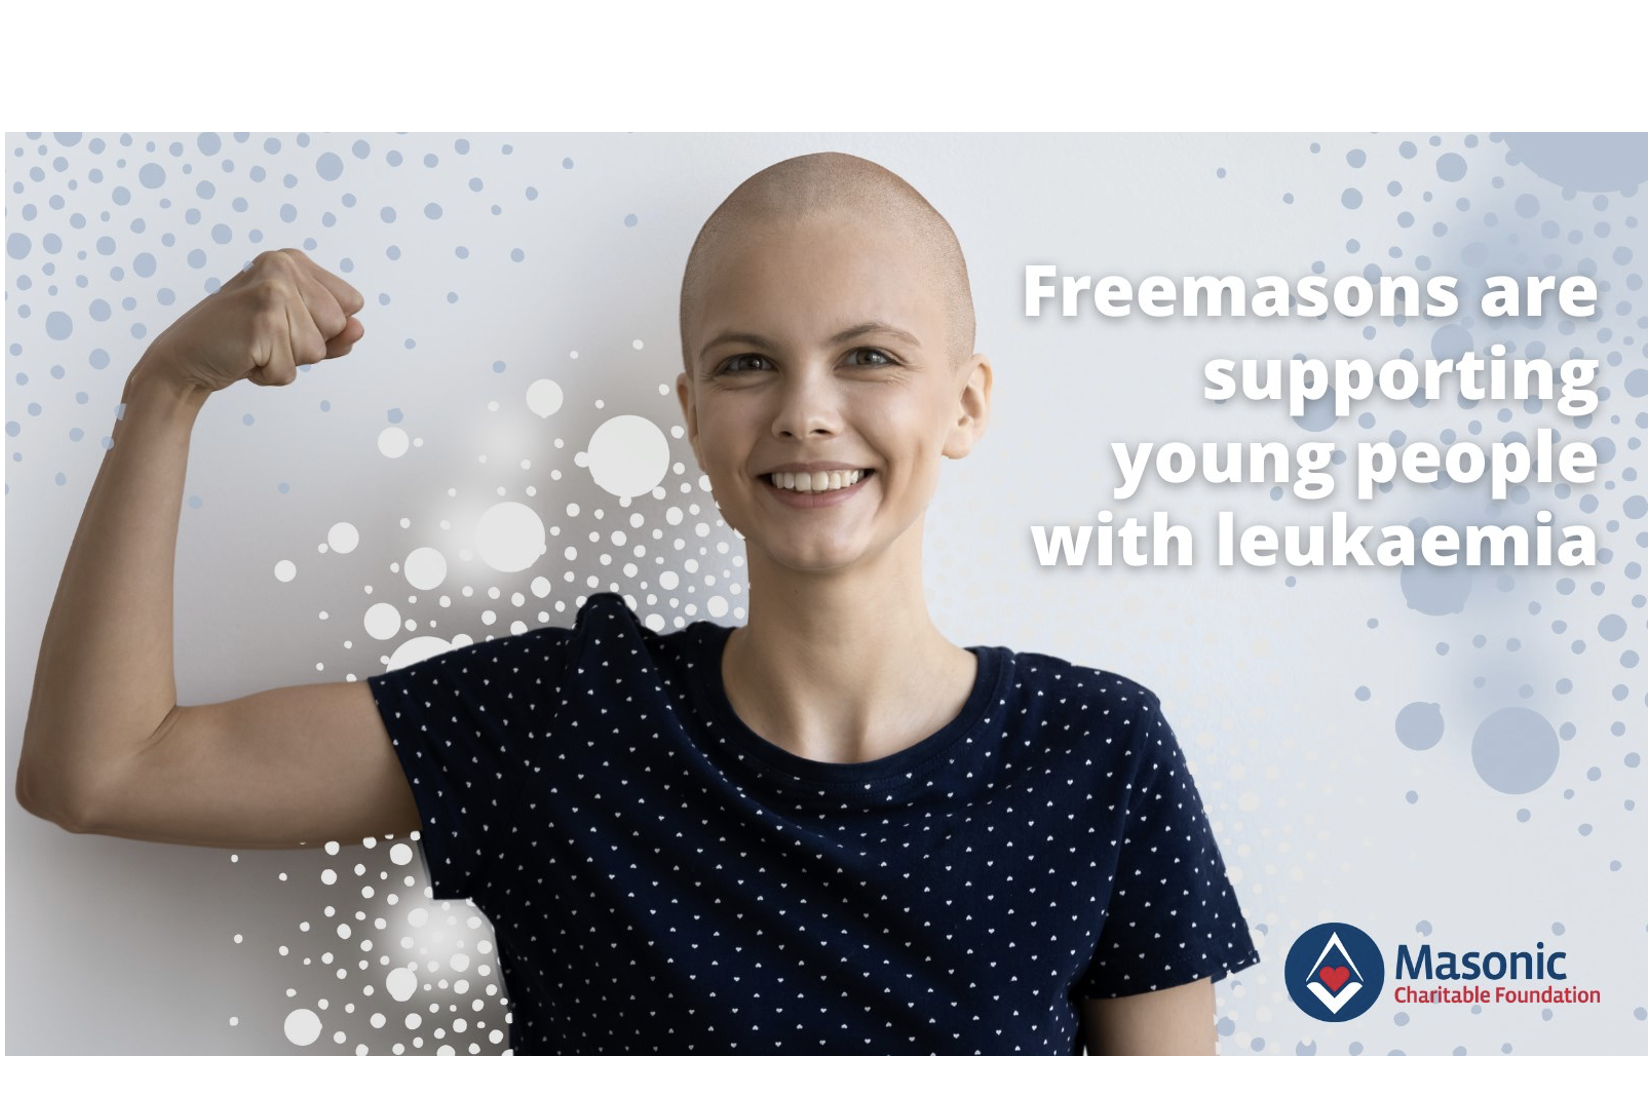 Freemasons Supporting Young People with Leukaemia